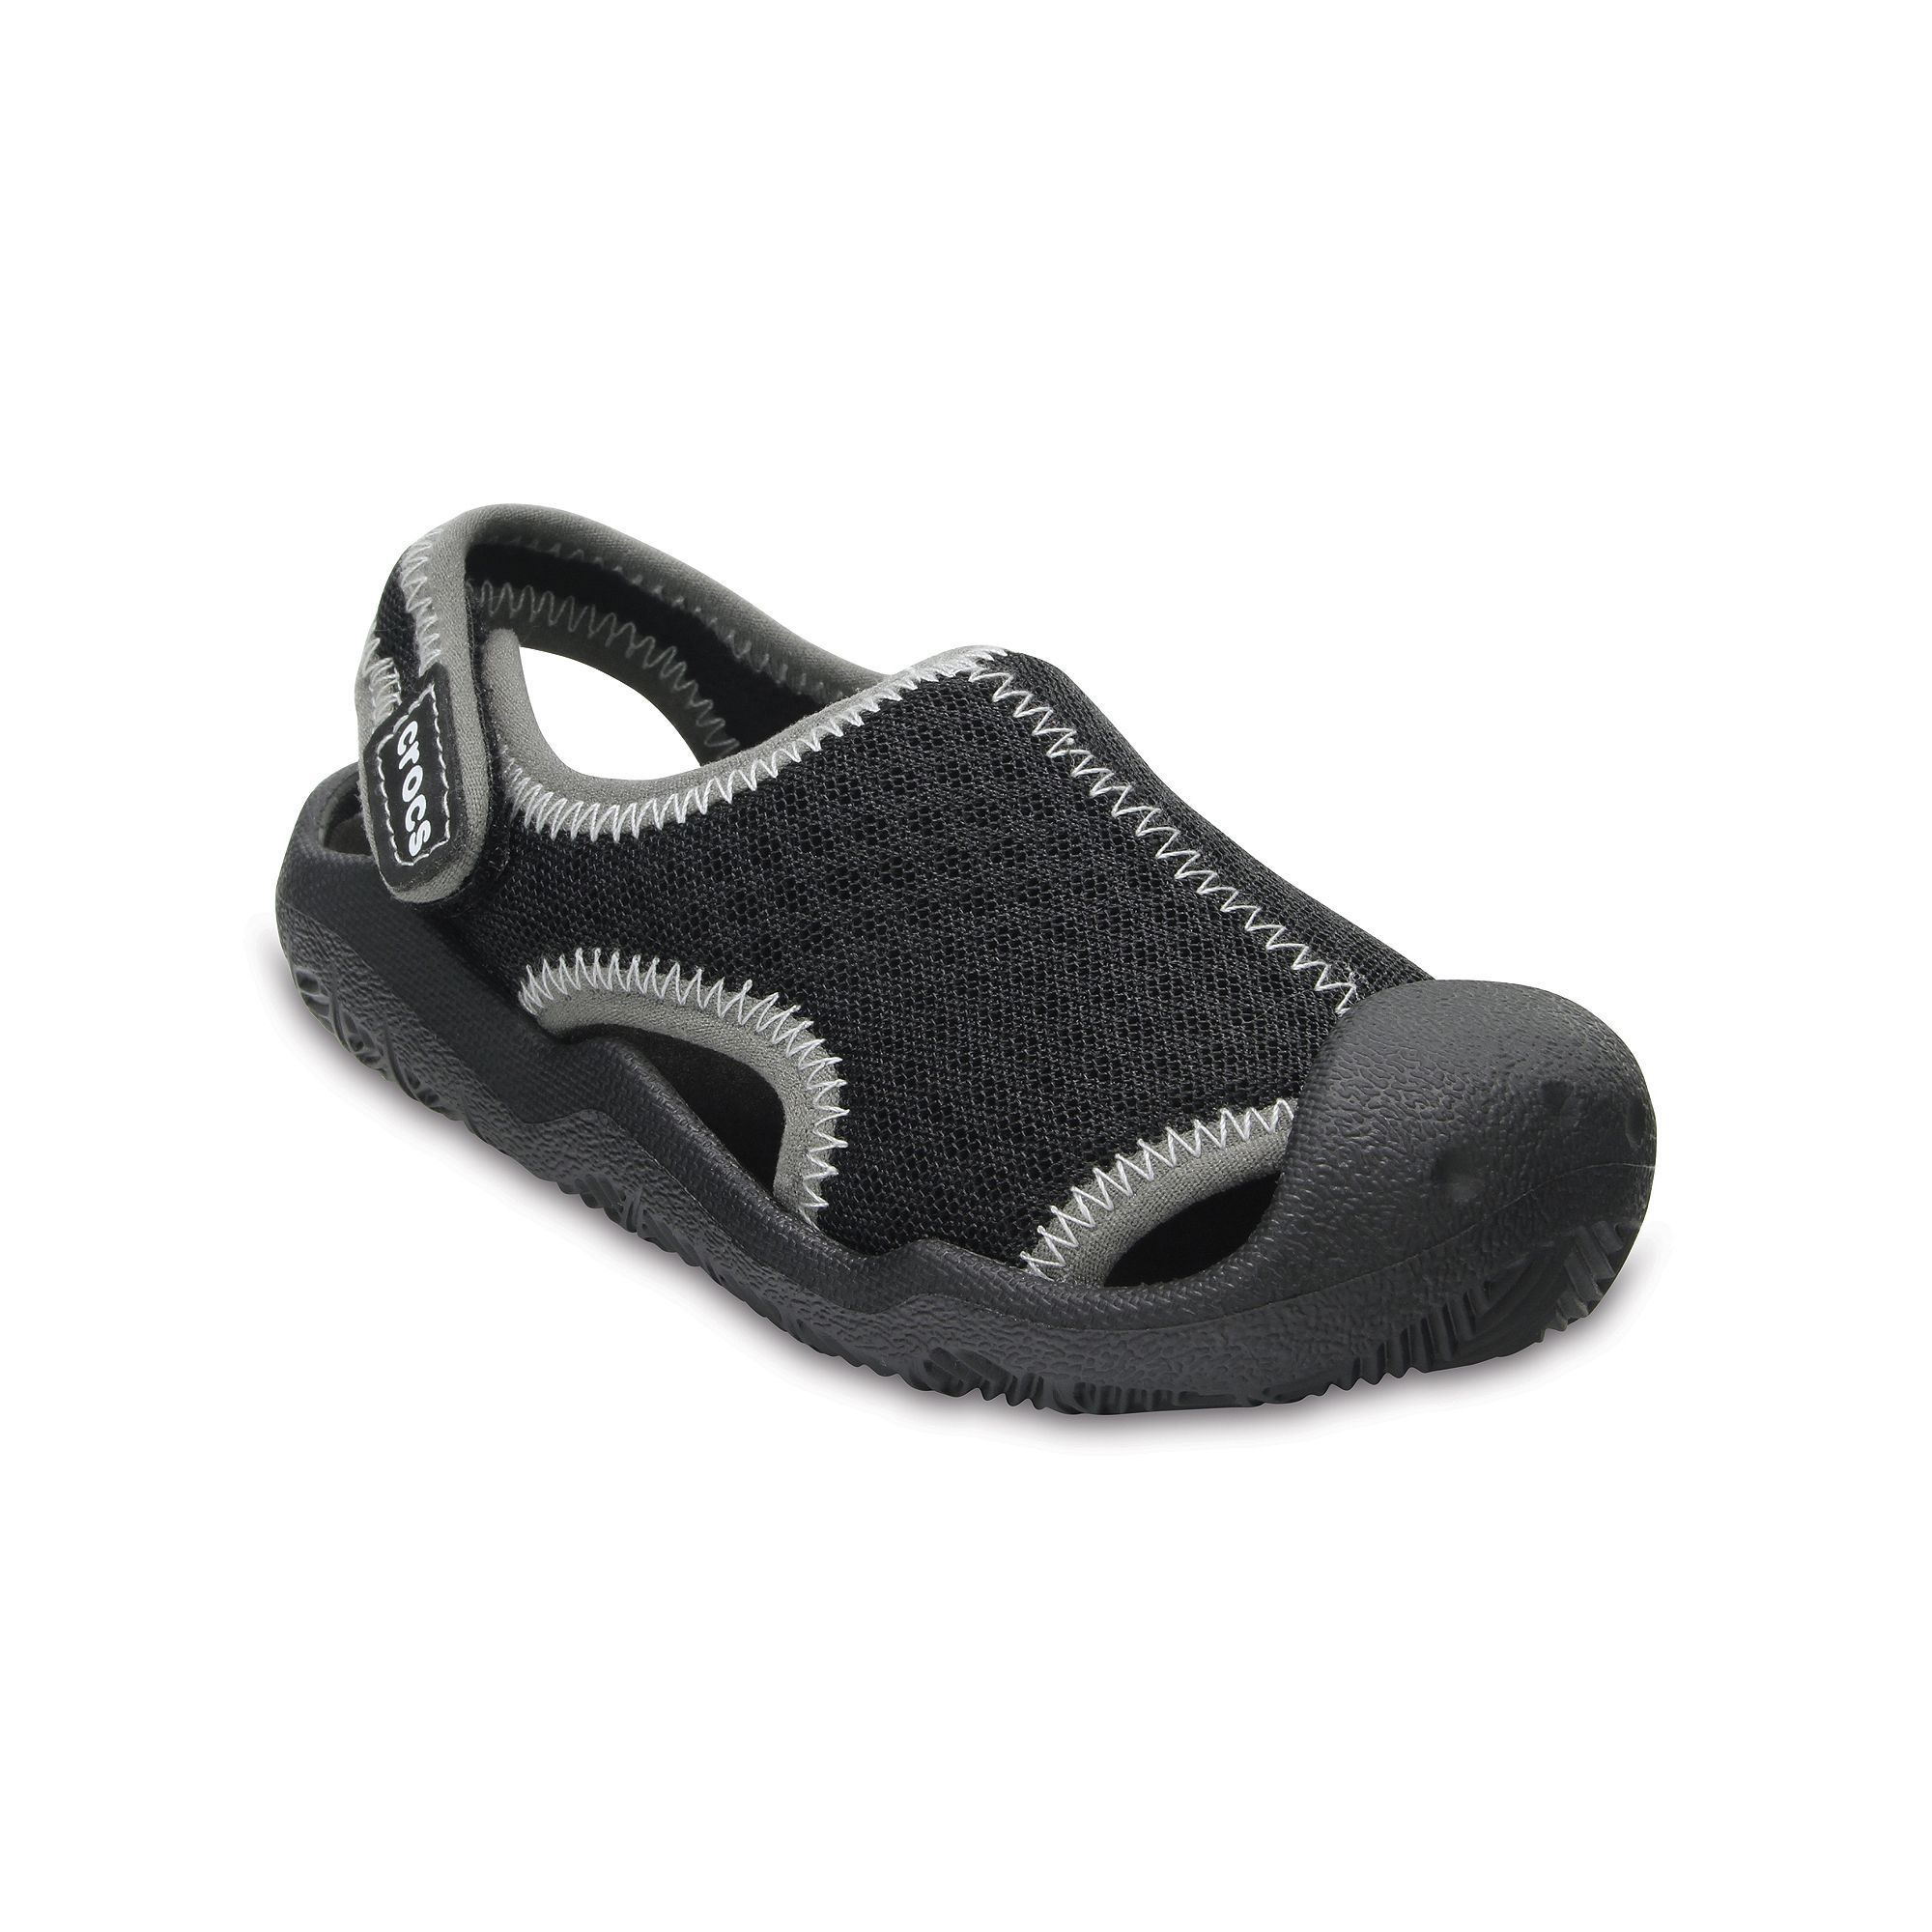 be95ca714901 Crocs Swiftwater Boys  Sandals in 2019